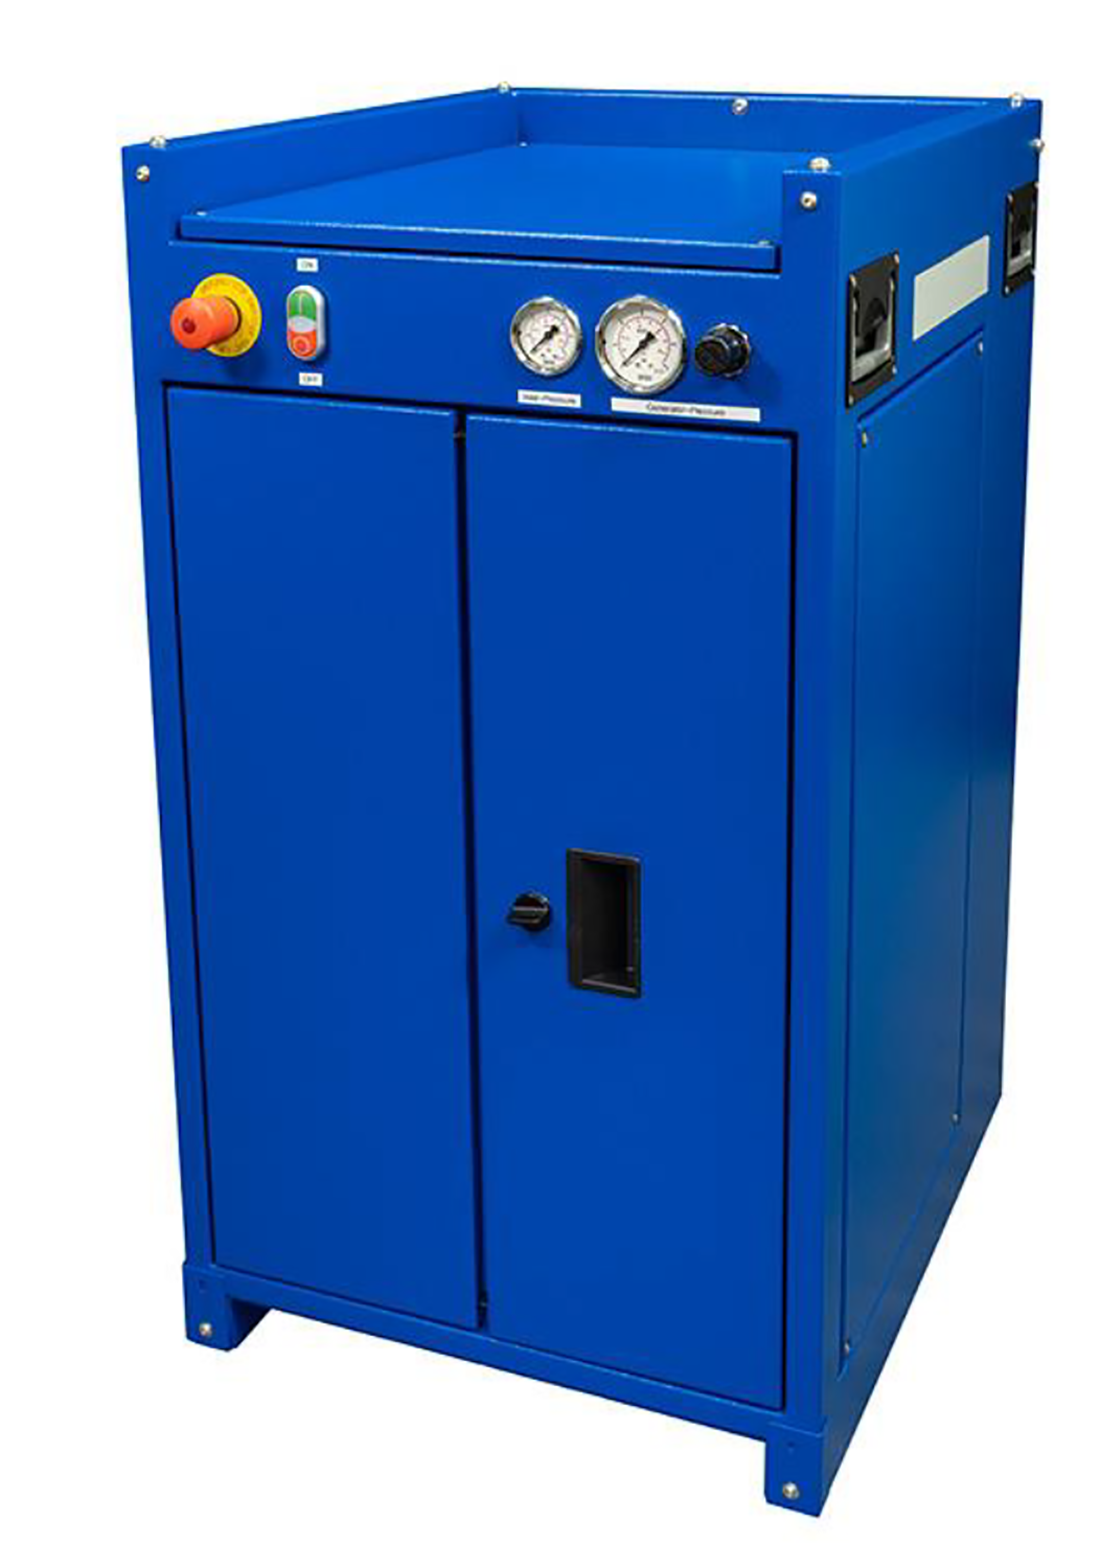 TSI Incorporated 8150 Filter Tester